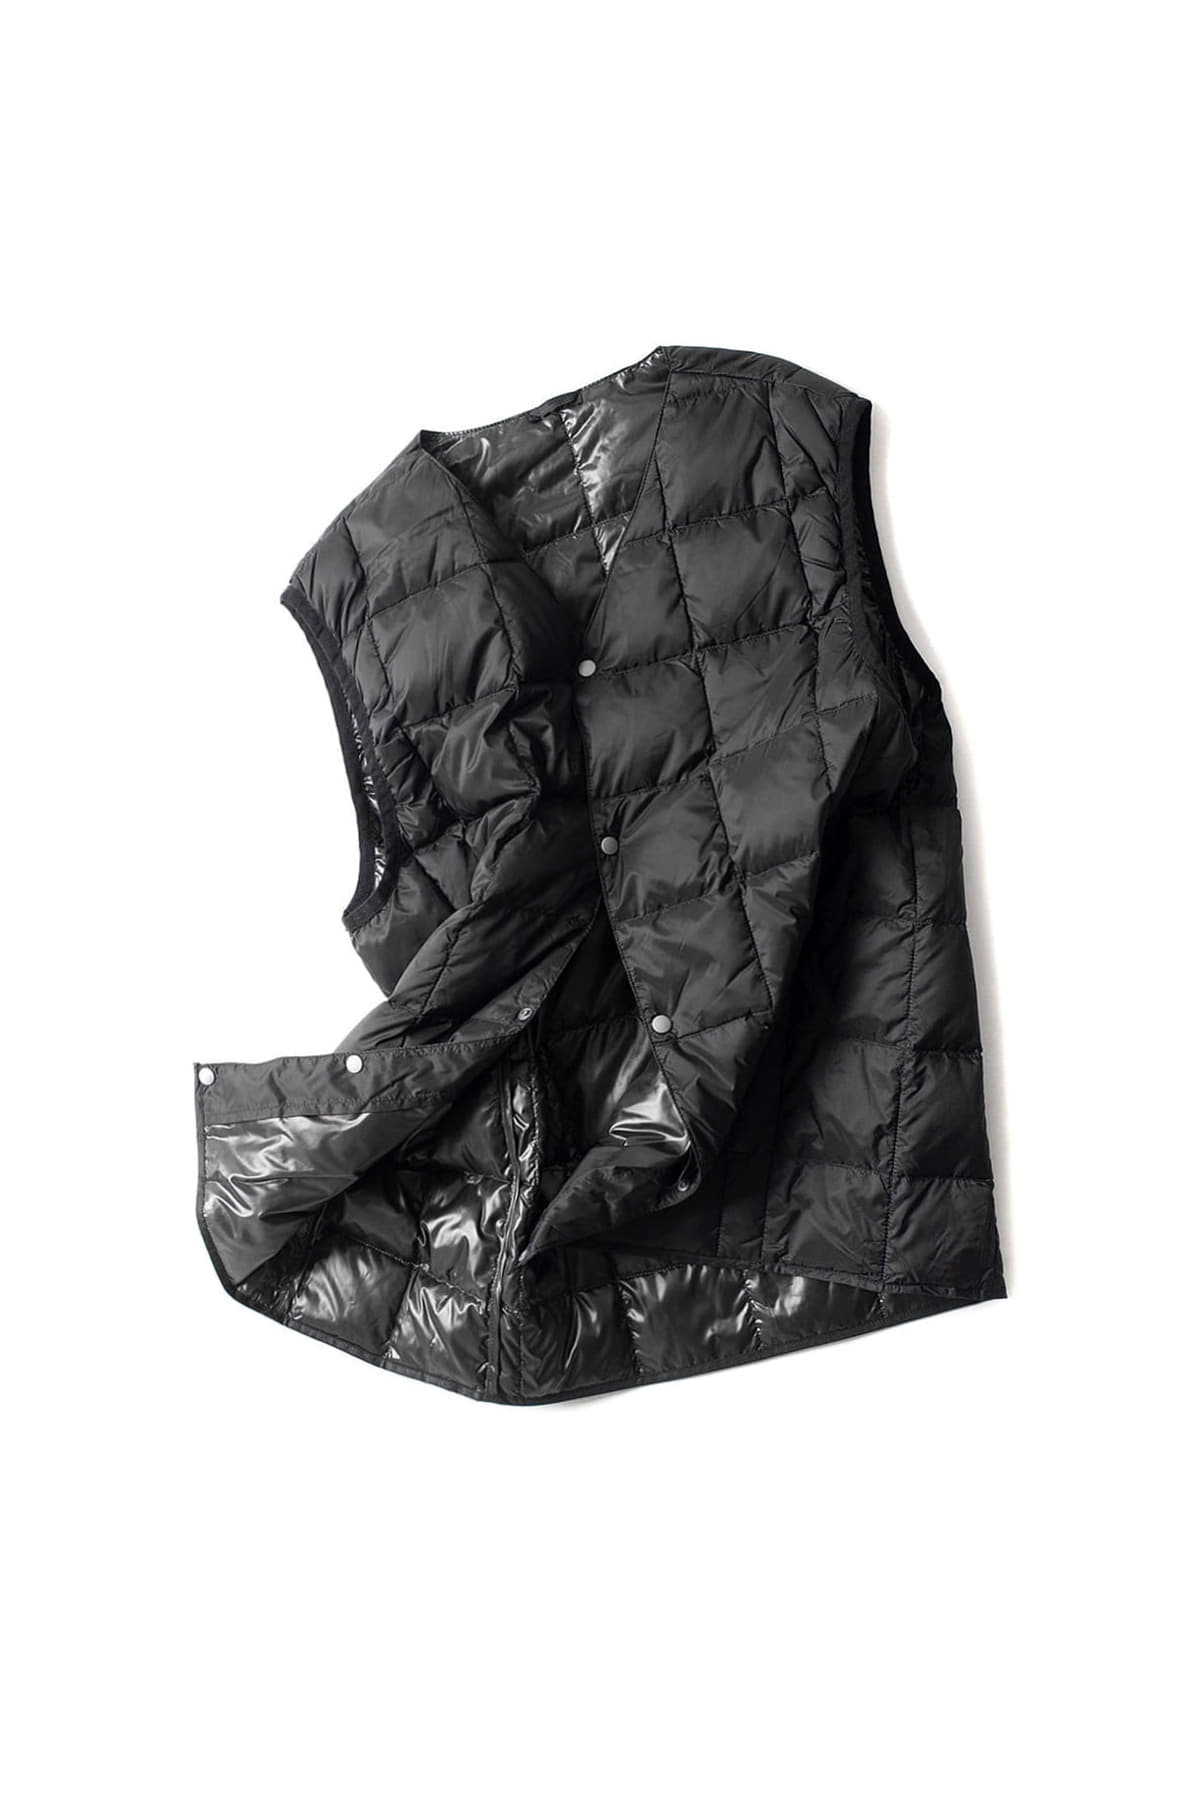 TAION : V Neck Button Down Vest (Black)